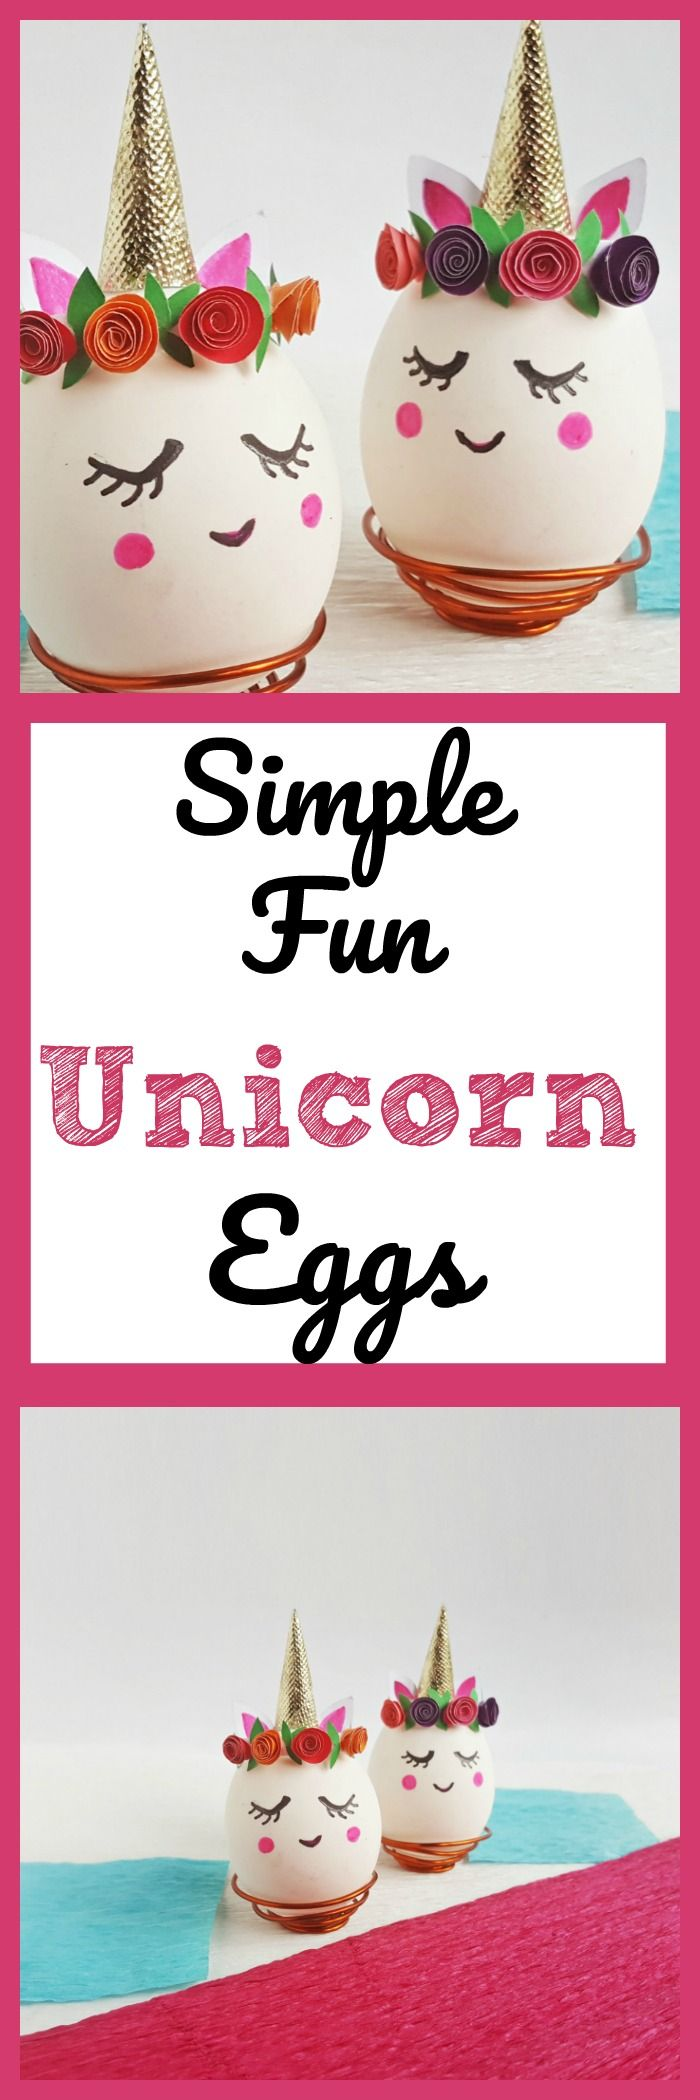 This beautiful Easter Eggs craft is an adorable Unicorn Egg that is an easy Unicorn craft for kids. Make a DIY Unicorn egg for unicorn parties too.  #unicorn #craft  via @debitalks